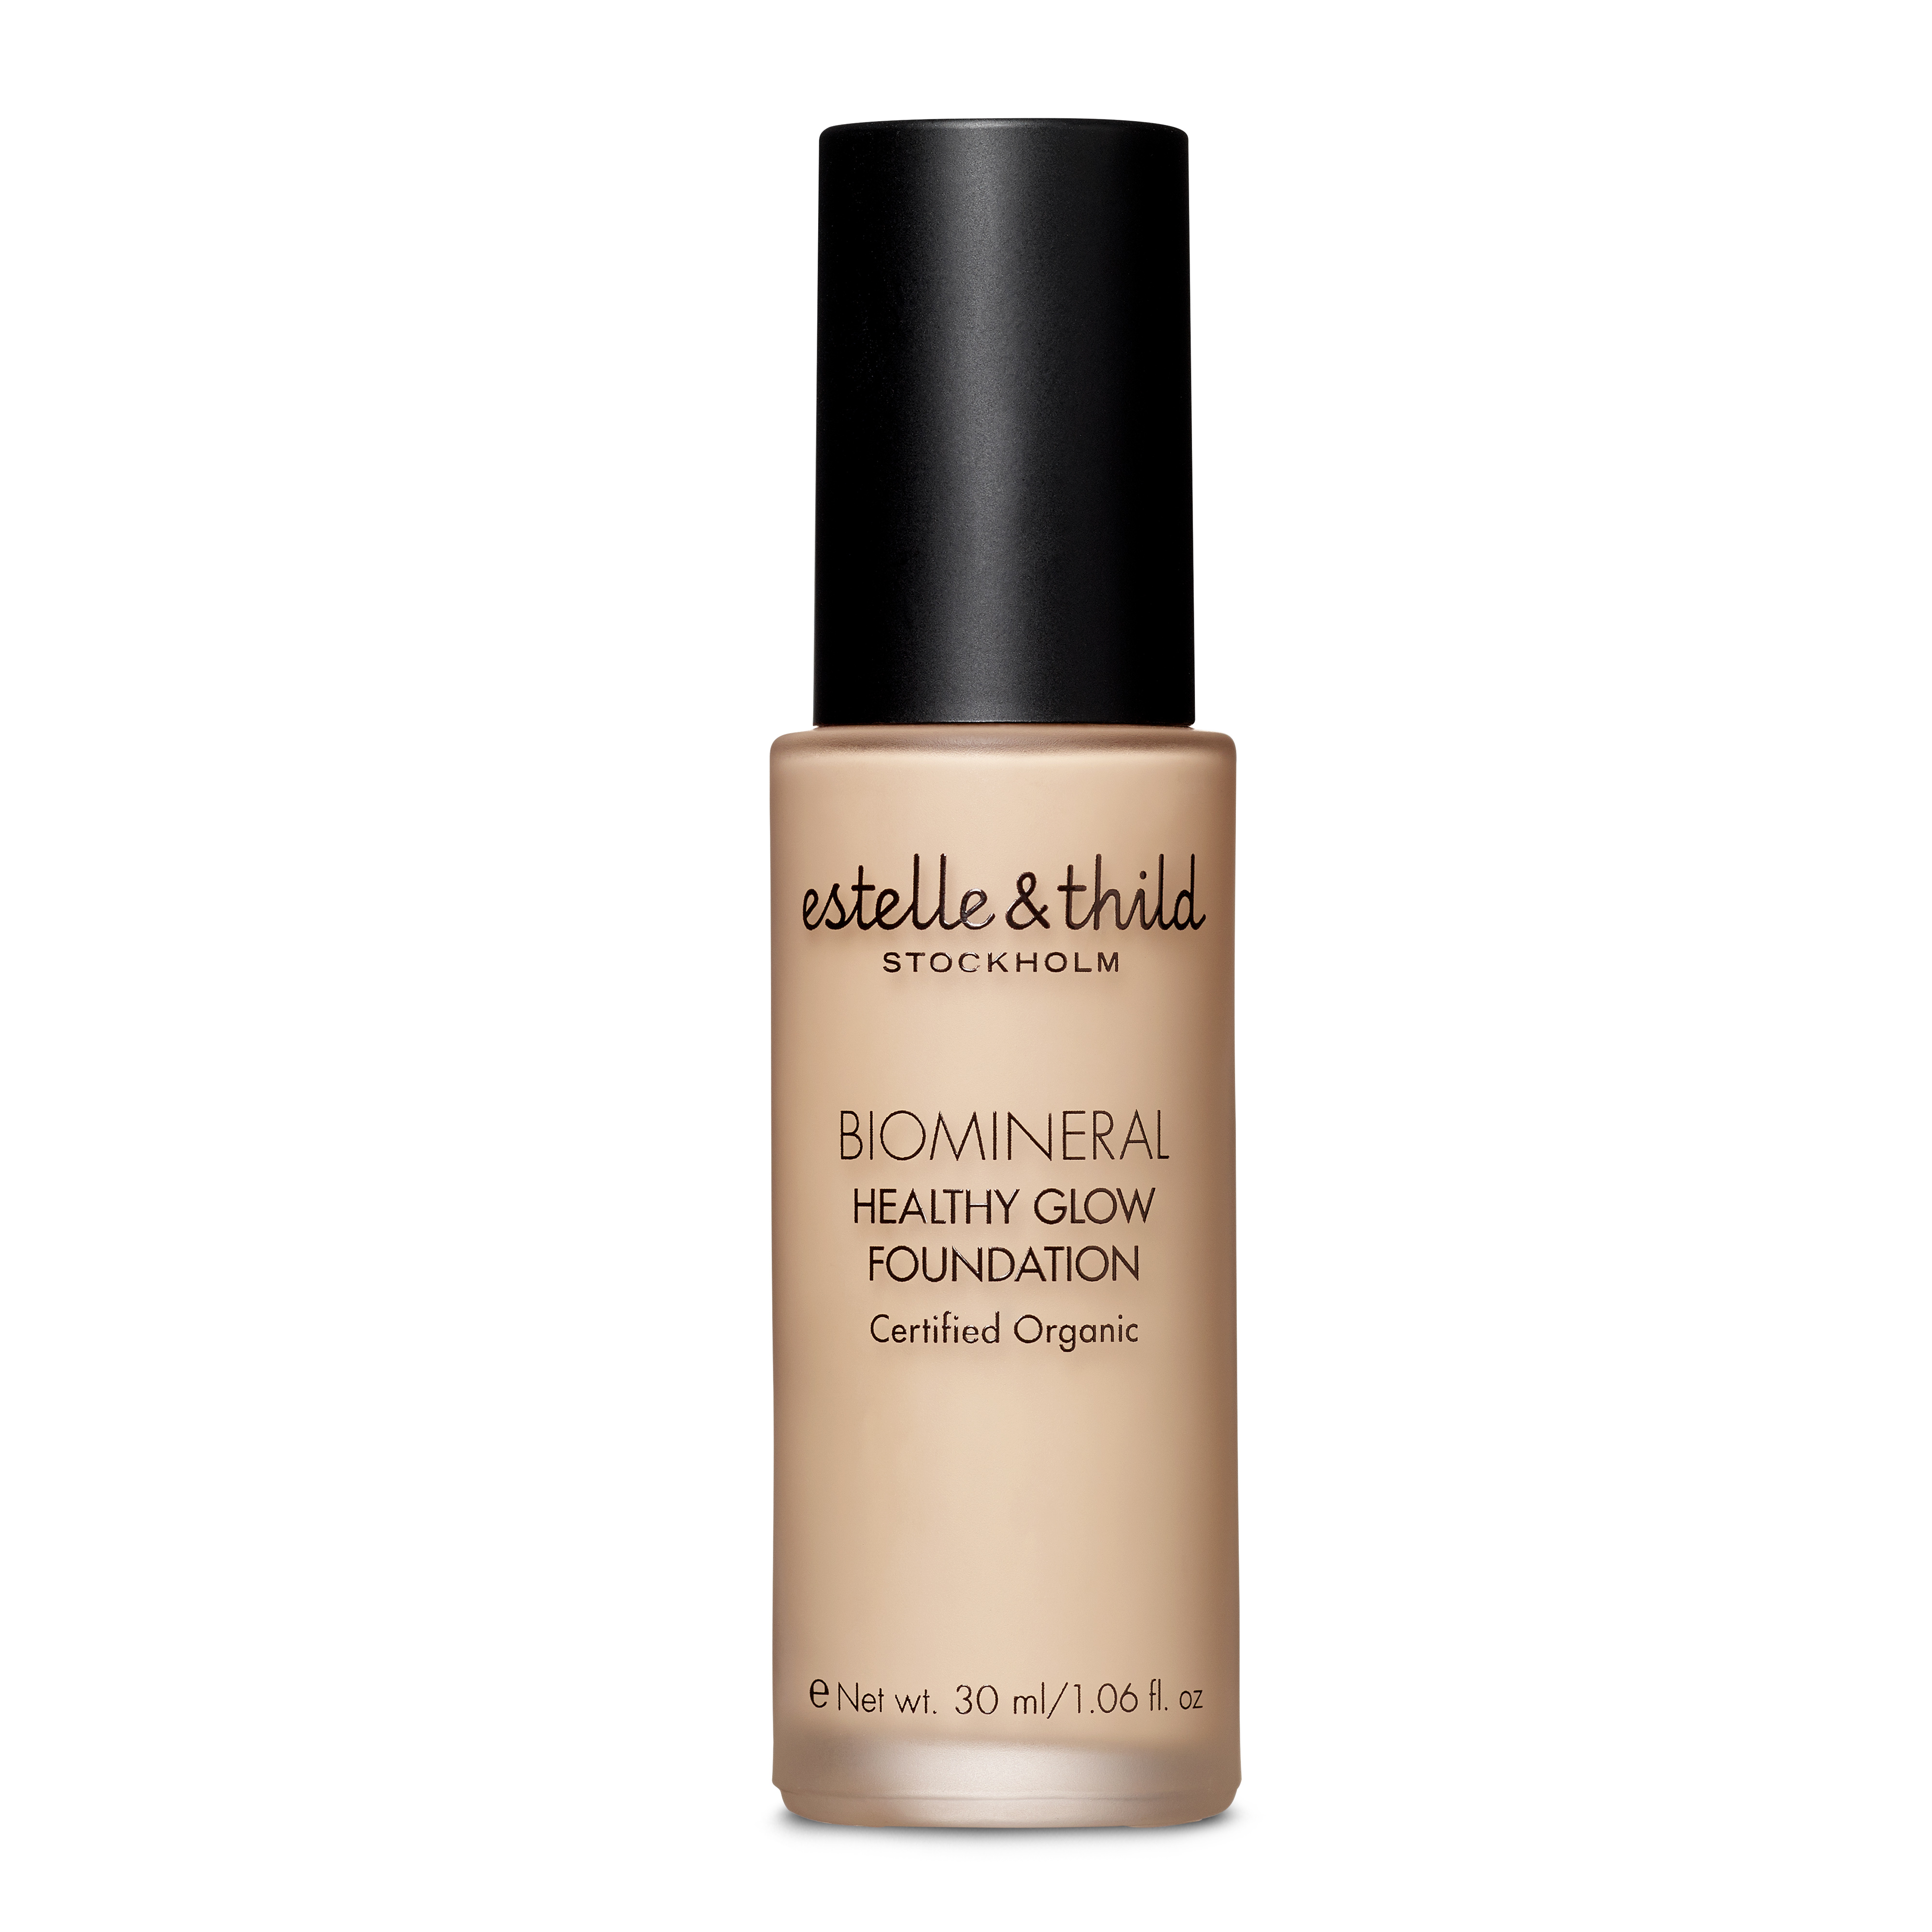 BioMineral Healthy Glow Foundation